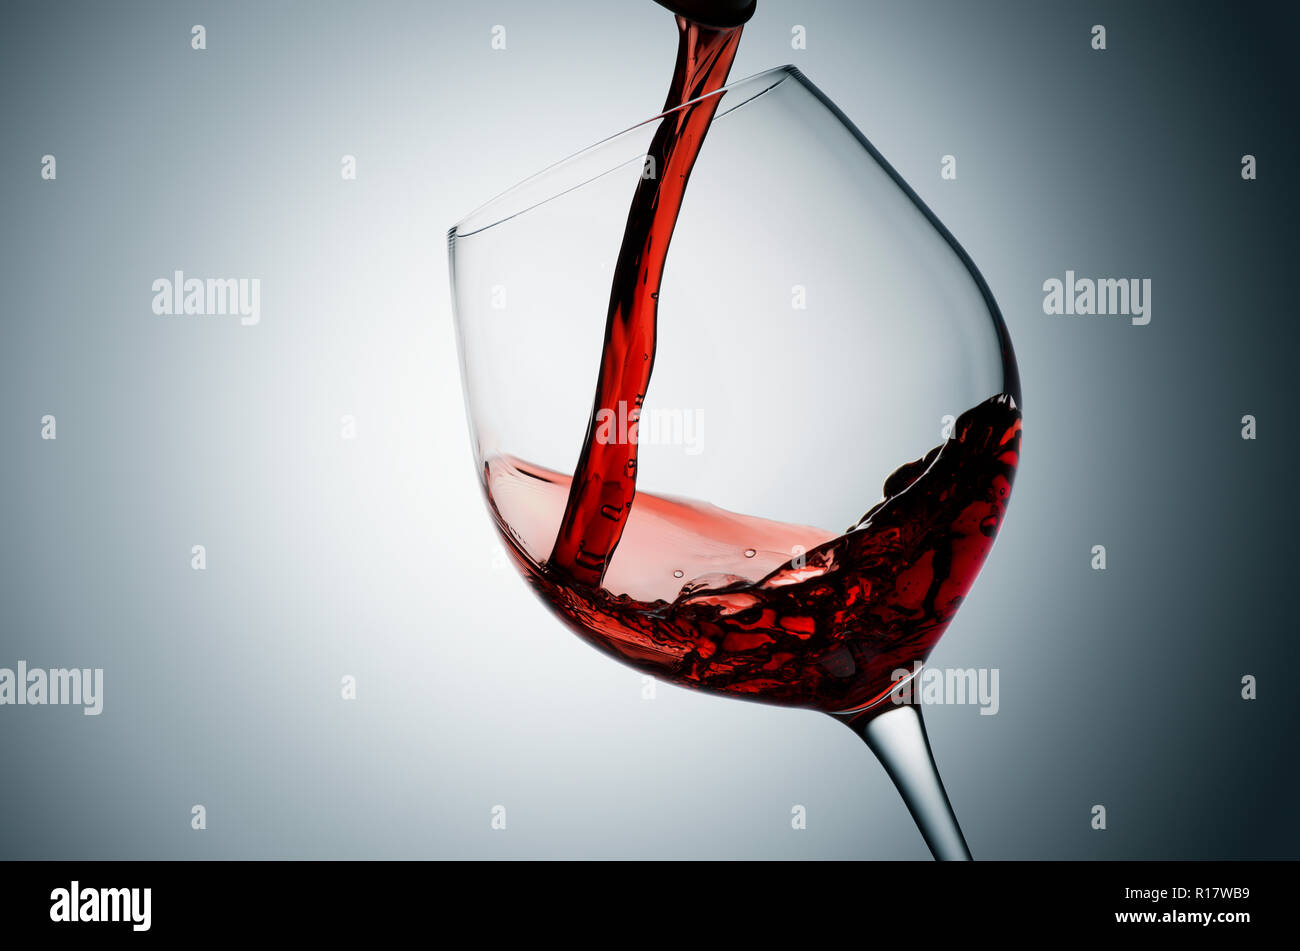 Pouring red wine into tilted glass, plain background - Stock Image